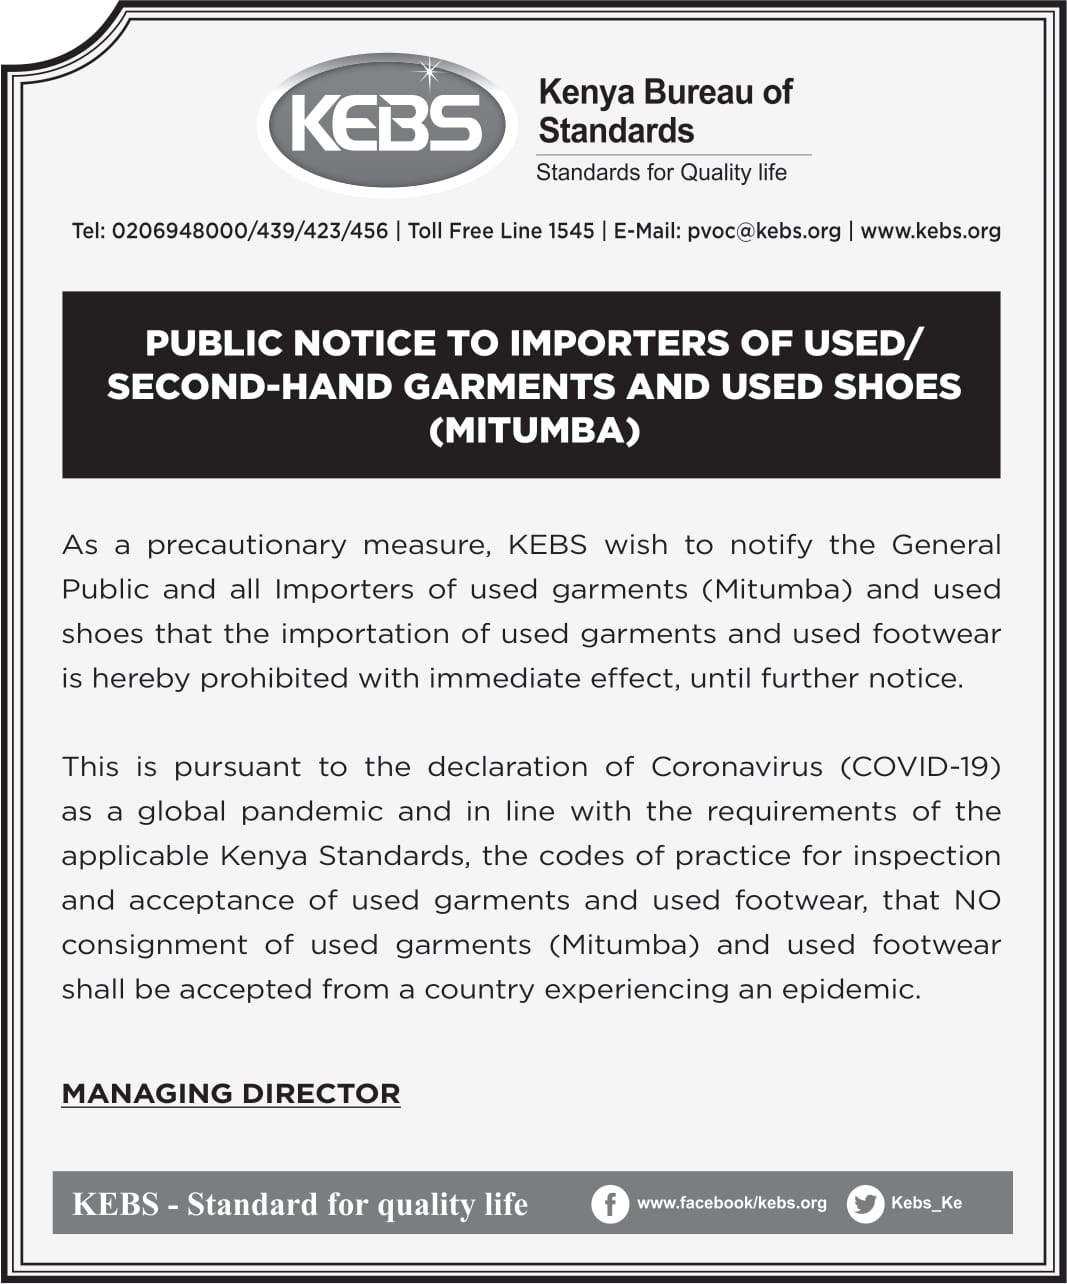 KEBS PVOC Agents and Zones